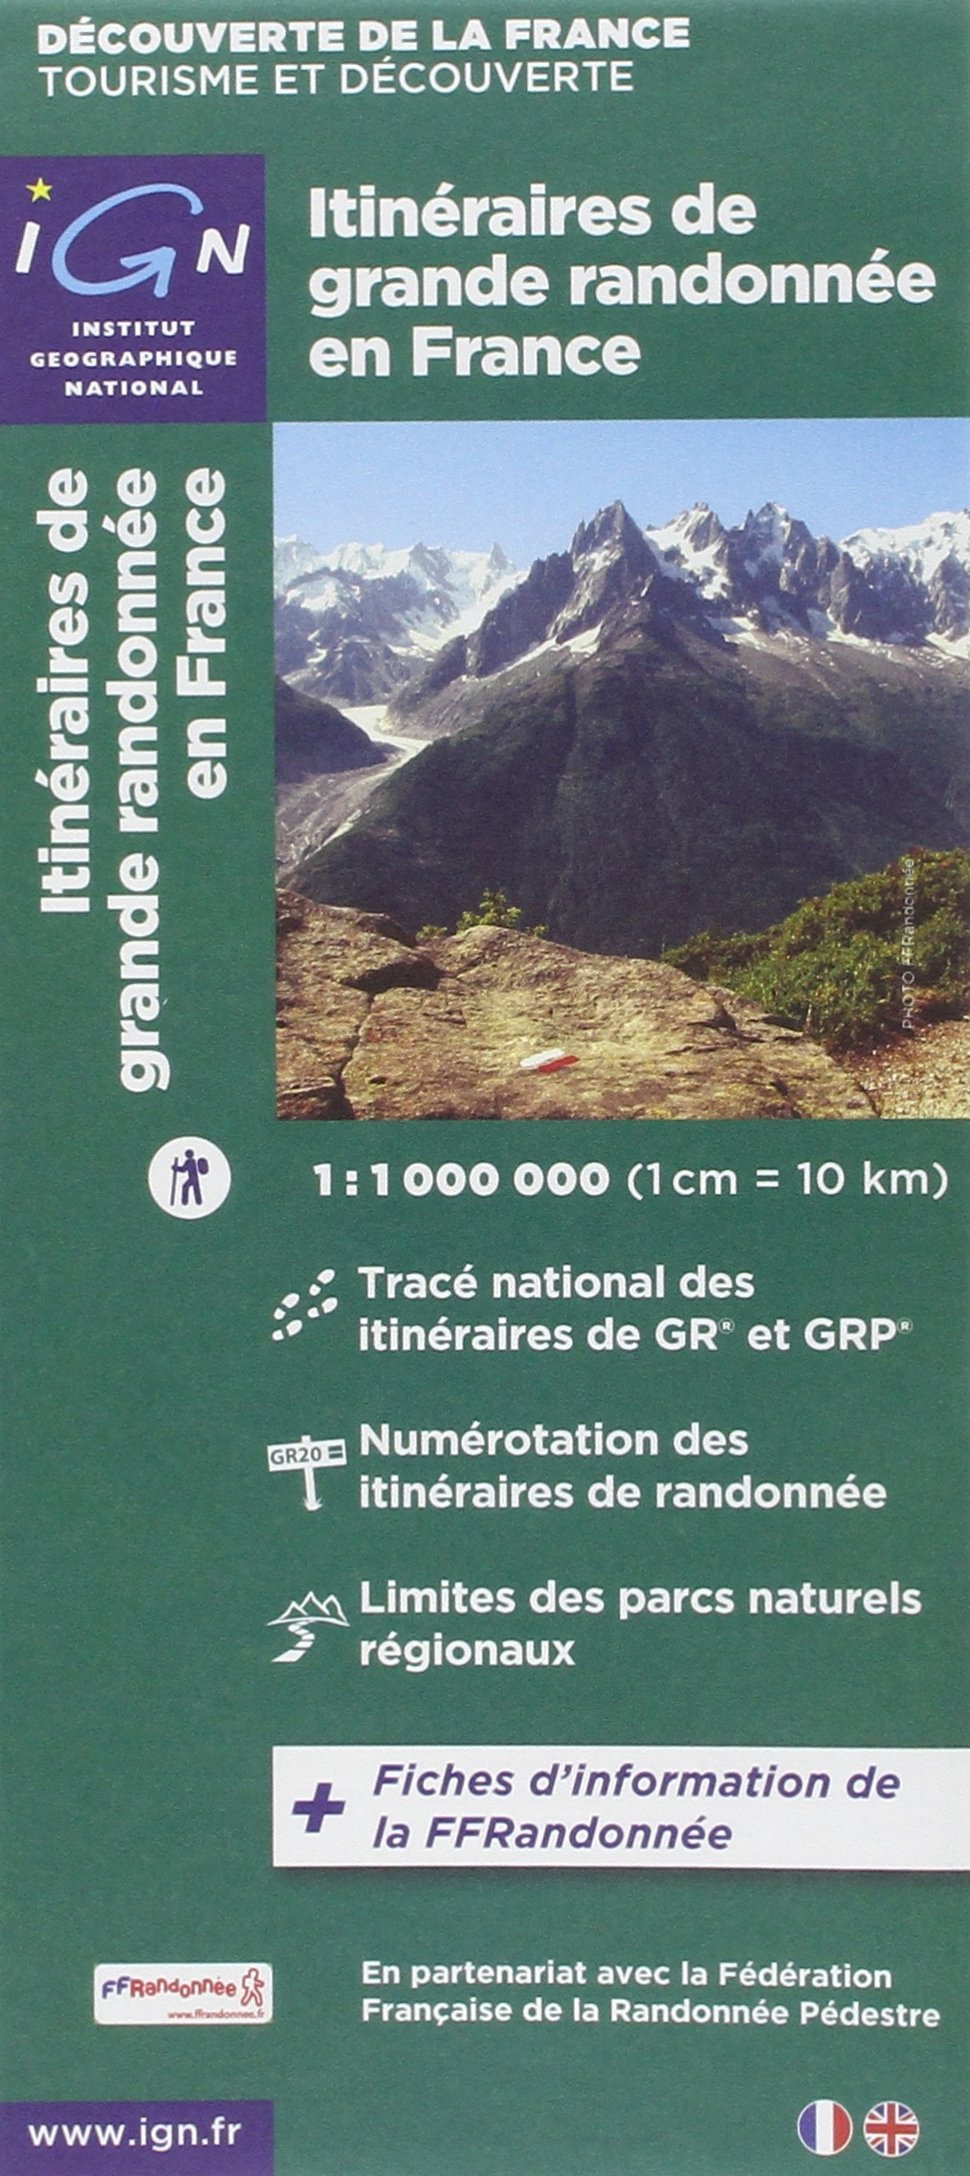 carte de france ign Long Distance Footpaths in France IGN (Itine'raires de grand